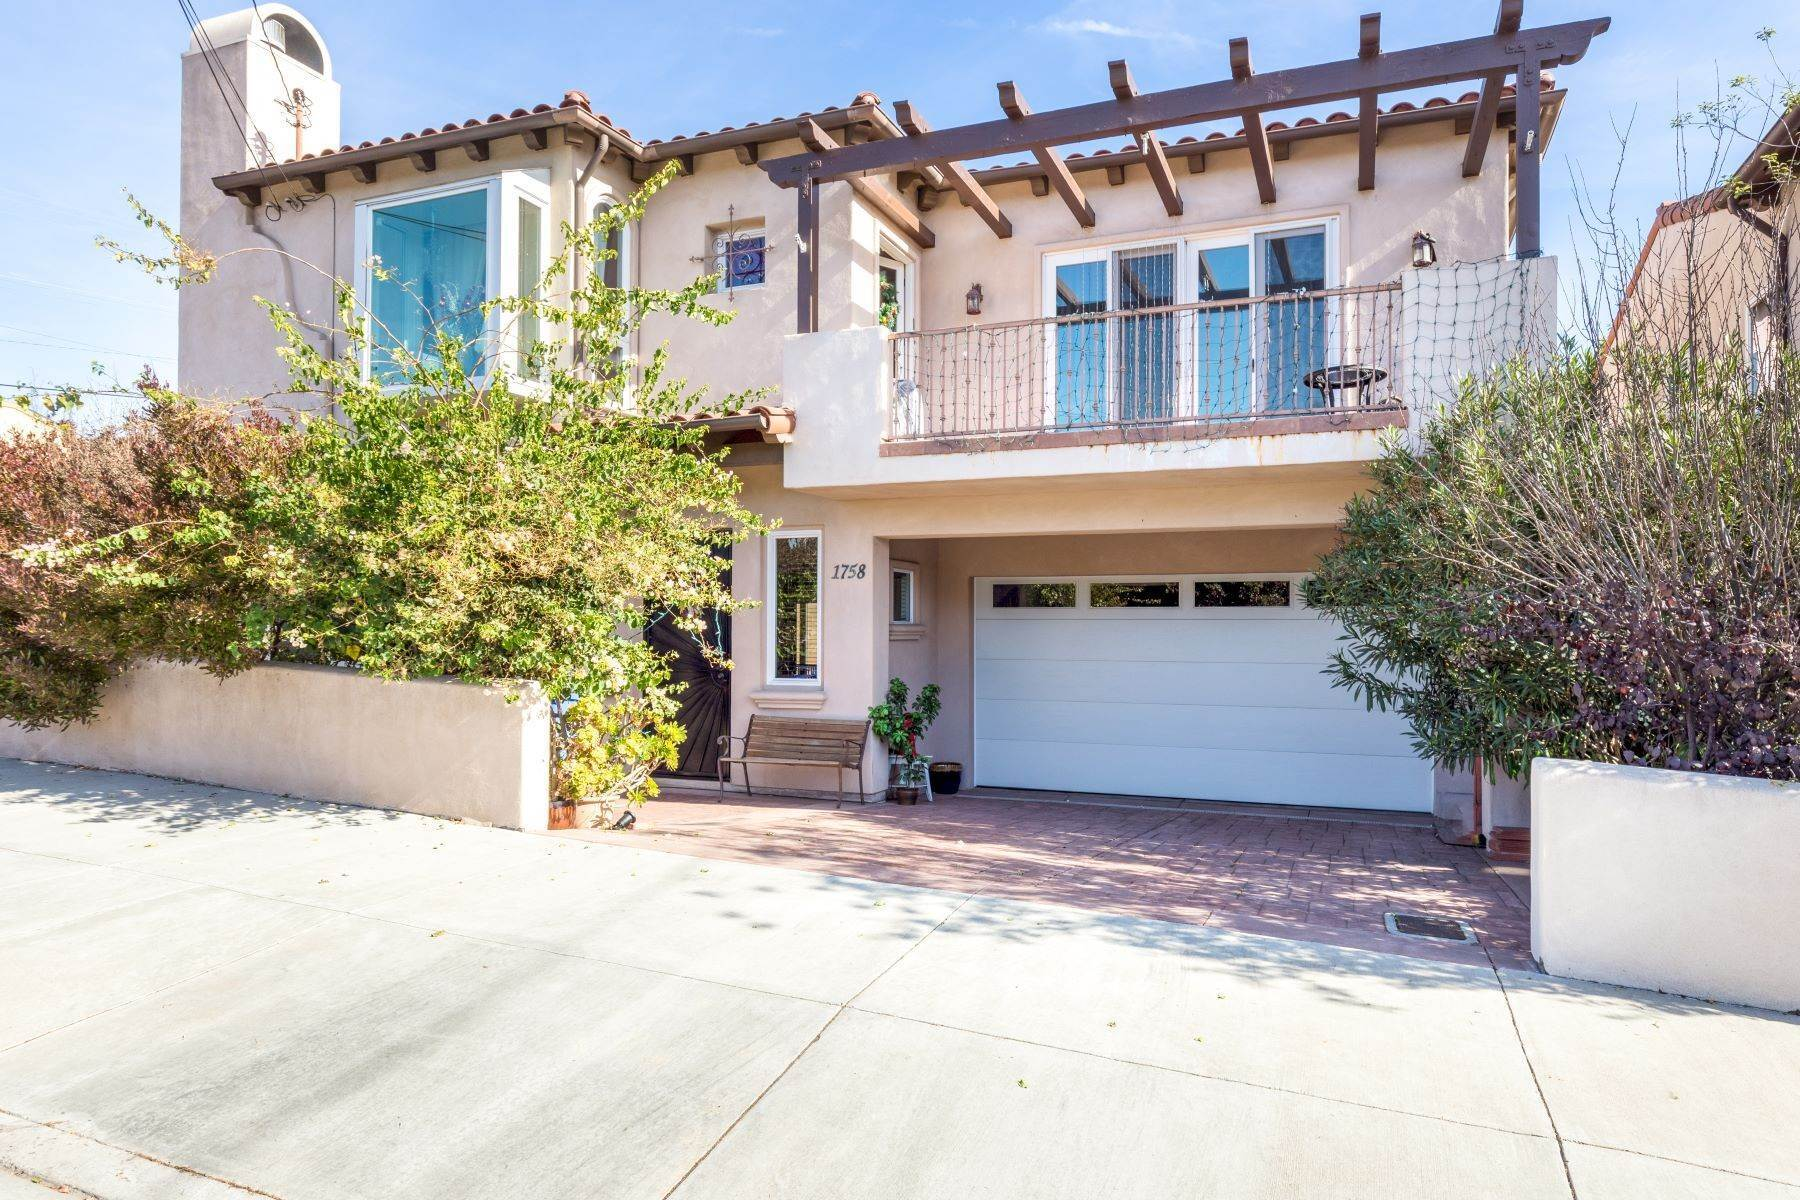 Single Family Homes for Sale at 1758 Ford Avenue, Redondo Beach, CA 90278 1758 Ford Avenue Redondo Beach, California 90278 United States